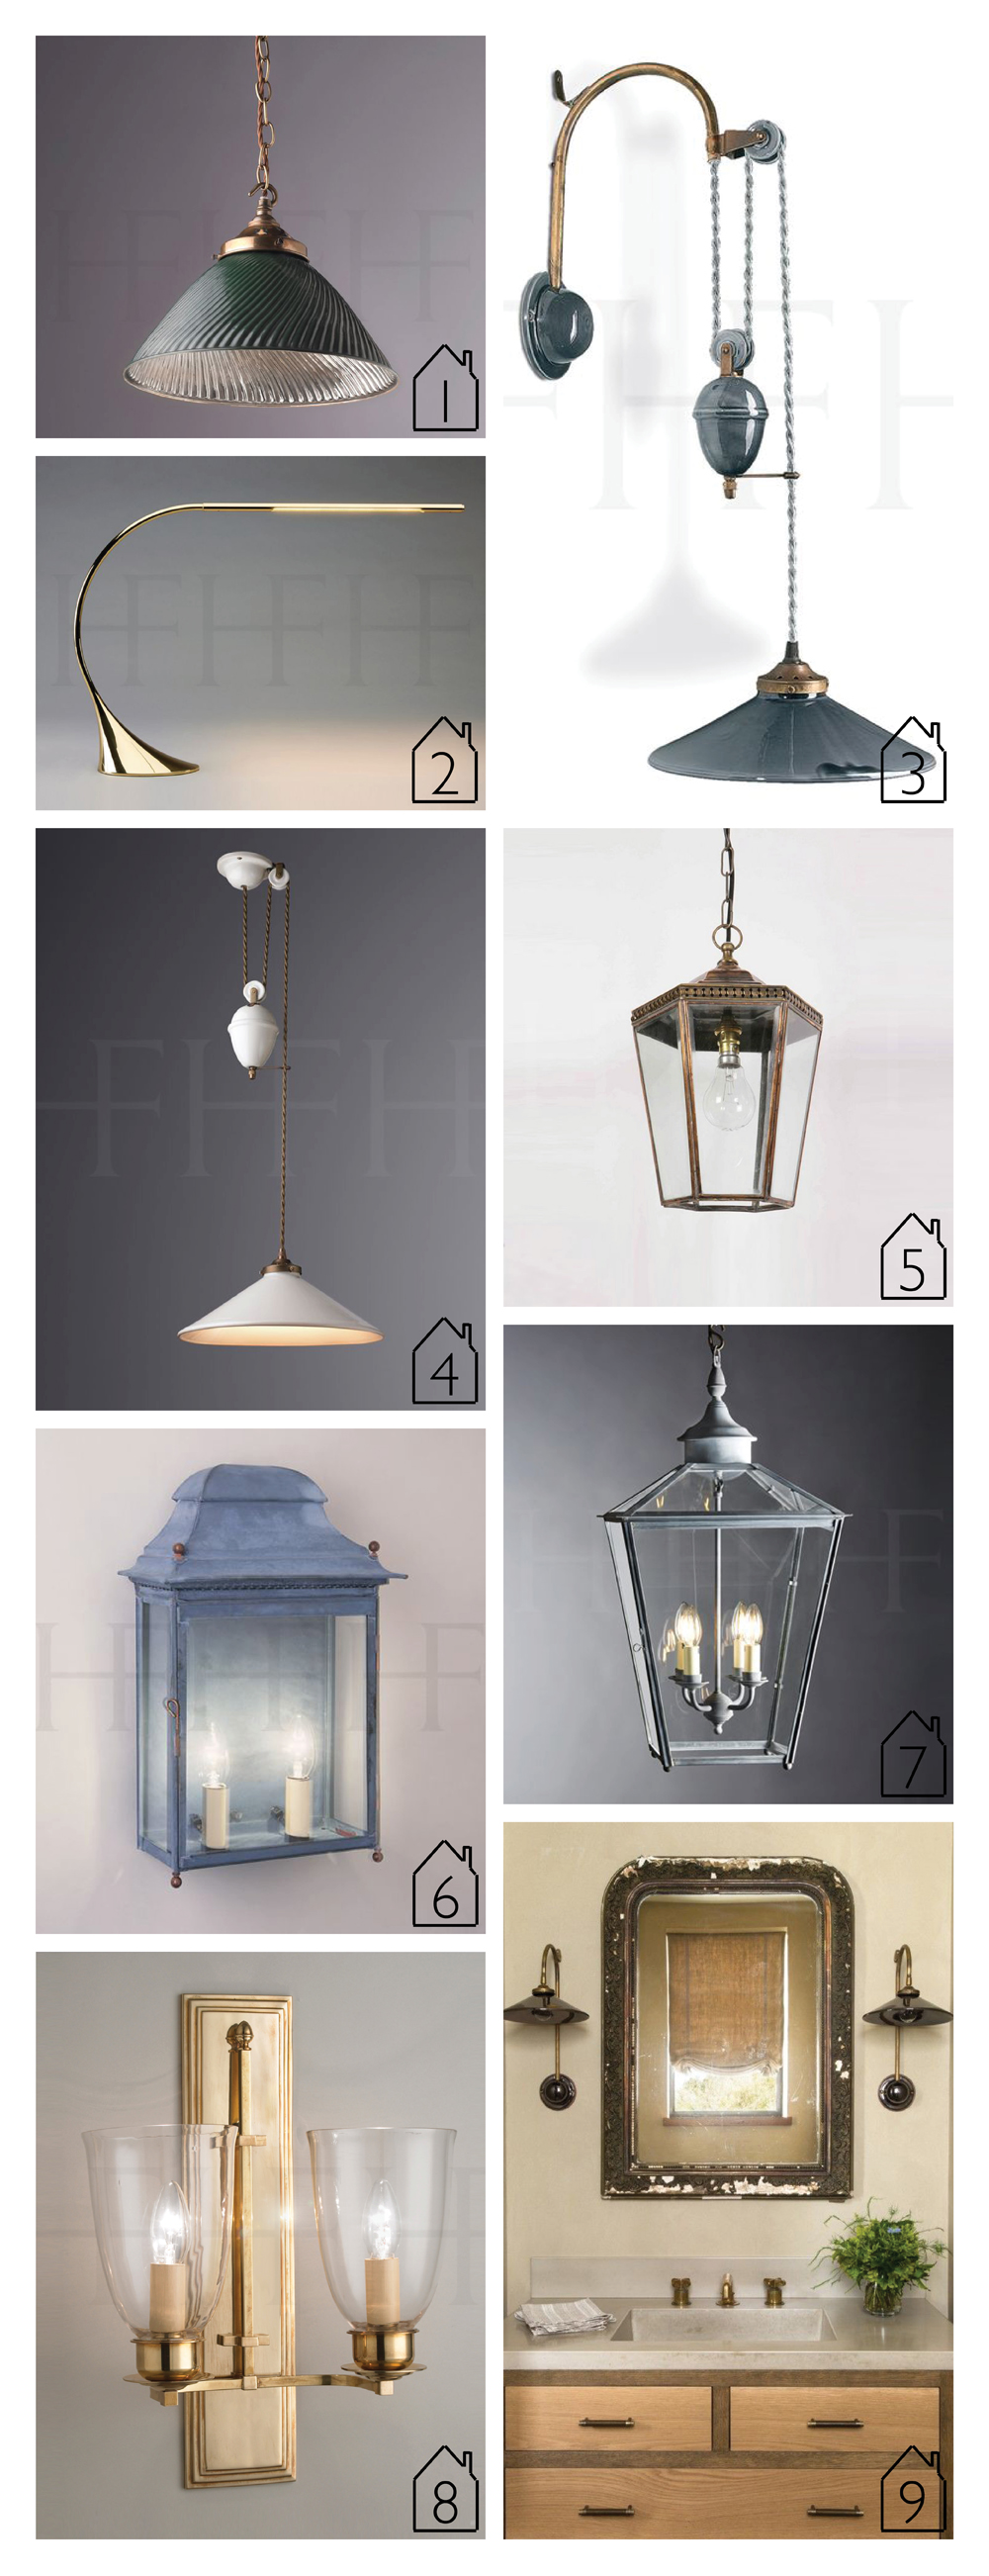 1.  Tiber Pendant, Green   2.  Toled Desk Lamp   3.  French Ceramic Wall Light, Rise and Fall   4.   French Ceramic Rise and Fall, With Weights   5.  Chelsea Pendant, Small   6.  Chantilly Wall Lantern   7.  Sir John Soane Hanging Lantern   8.  Albert Wall Light, Double   9.  French Ceramic Wall Light  - interior by  Jute Design